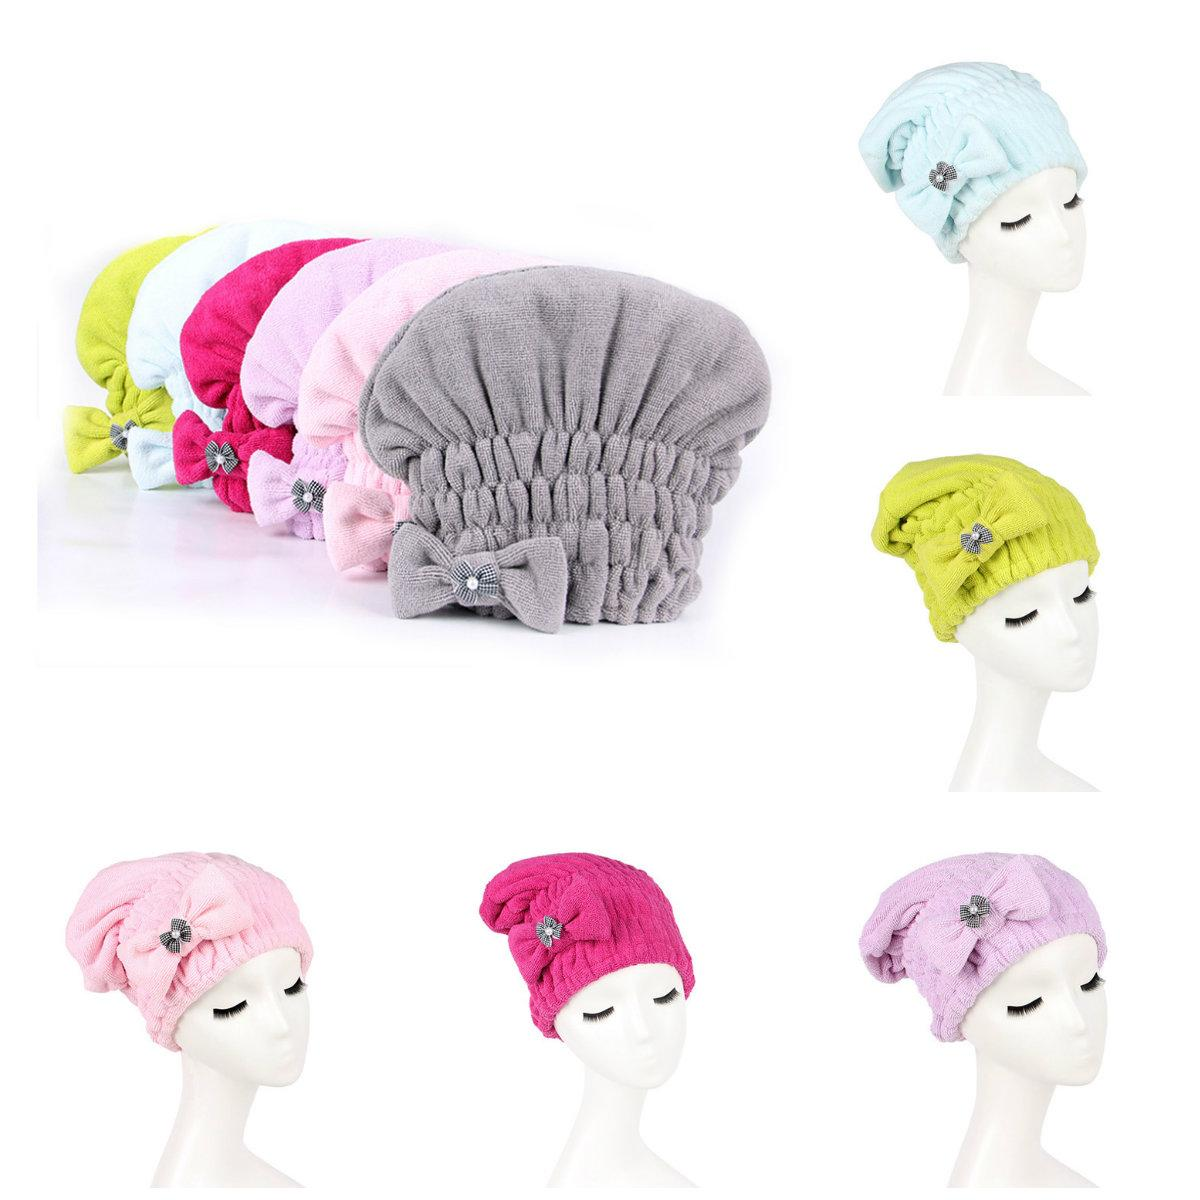 2019 Kids Creative Towels For Bathroom Dry Hair Hats Bath Towels For